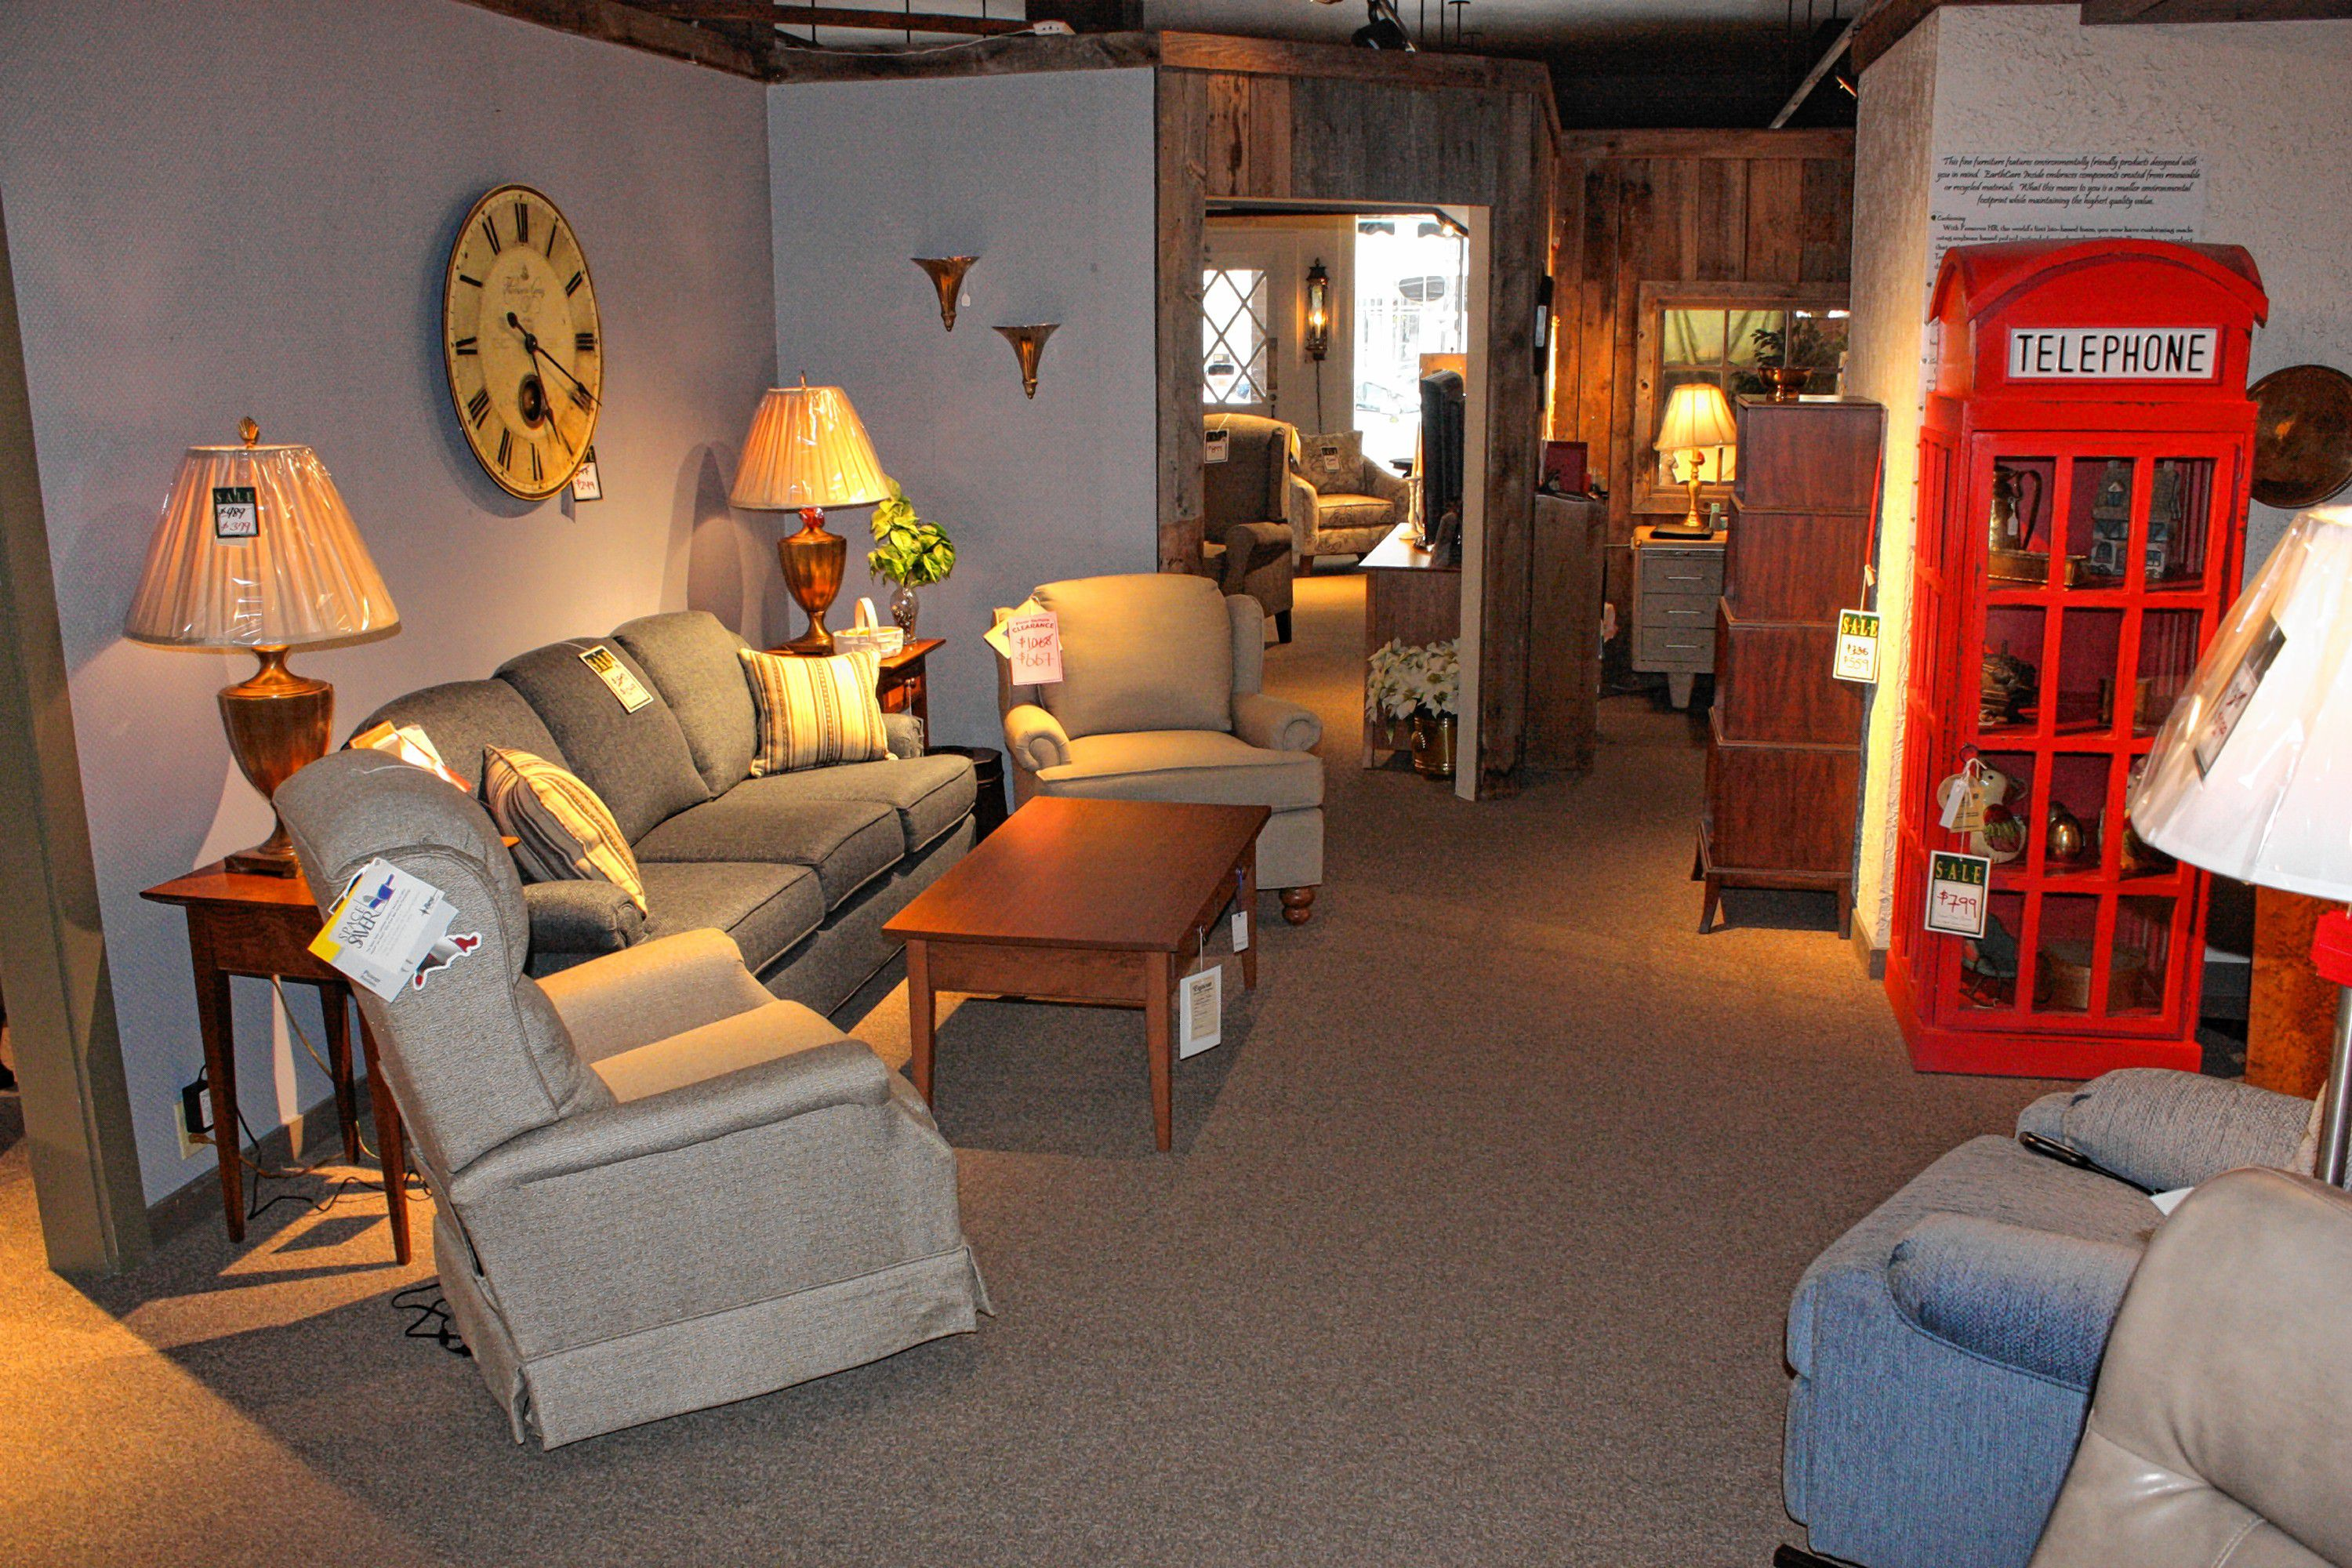 Gentil Thereu0027s A Shocking Amount Of Inventory At Endicott Furniture, The Repeat  Winner Of The Best